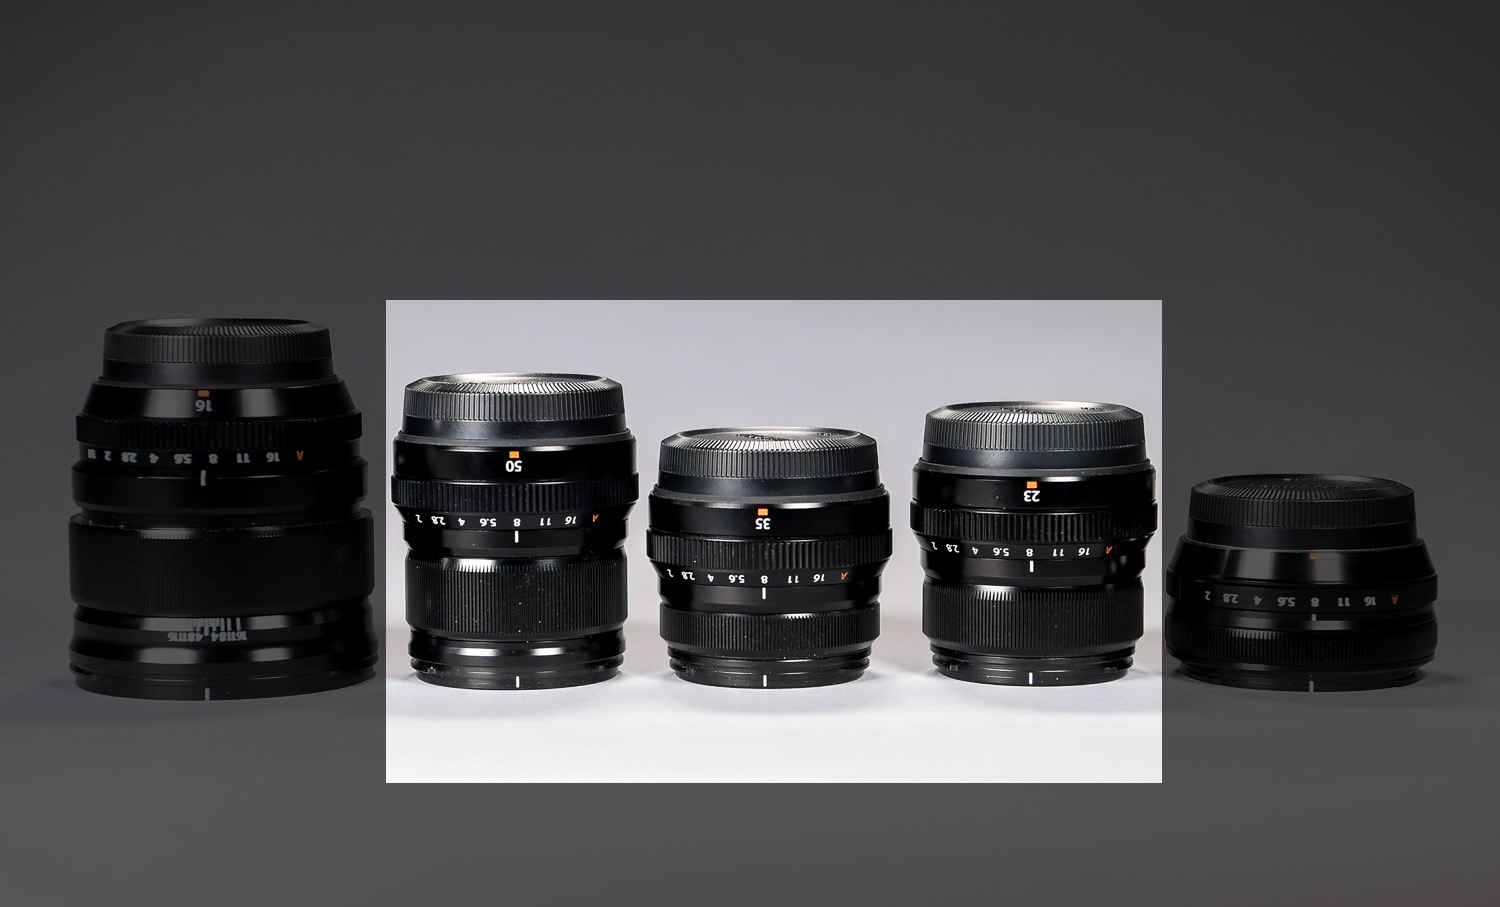 The Fujifilm 50mm, 35mm and 23mm lenses are all f2.0 and are sometimes referred to as Fujicrons, a nod to Leica's Summicron lenses which also have an f2.0 aperture. I've also referred these three lenses as the trifecta.